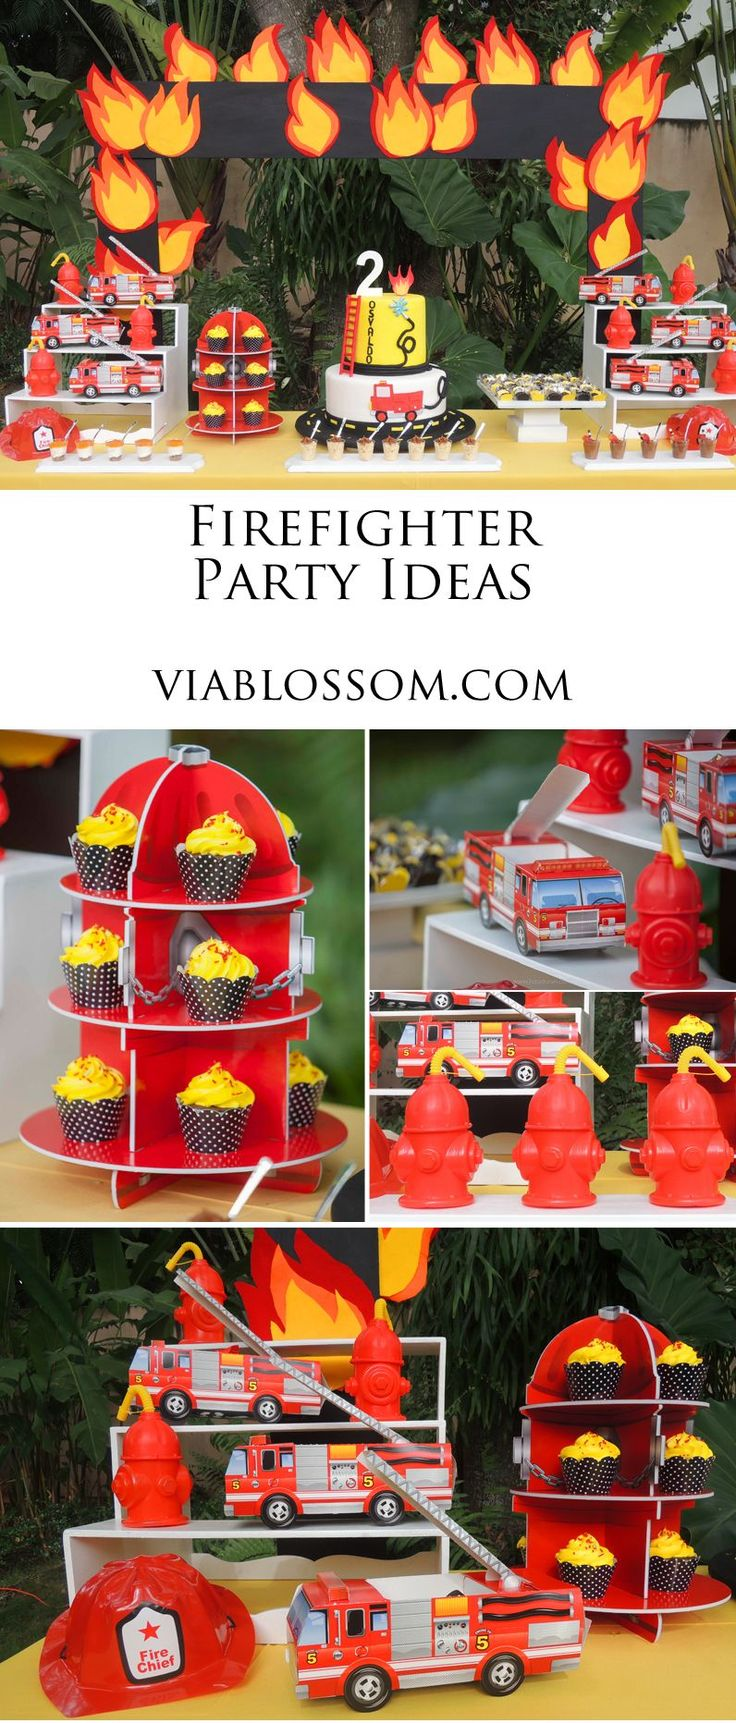 Firefighter Birthday Party Ideas and Party Supplies at the Via Blossom Blog! You don't want to miss it!